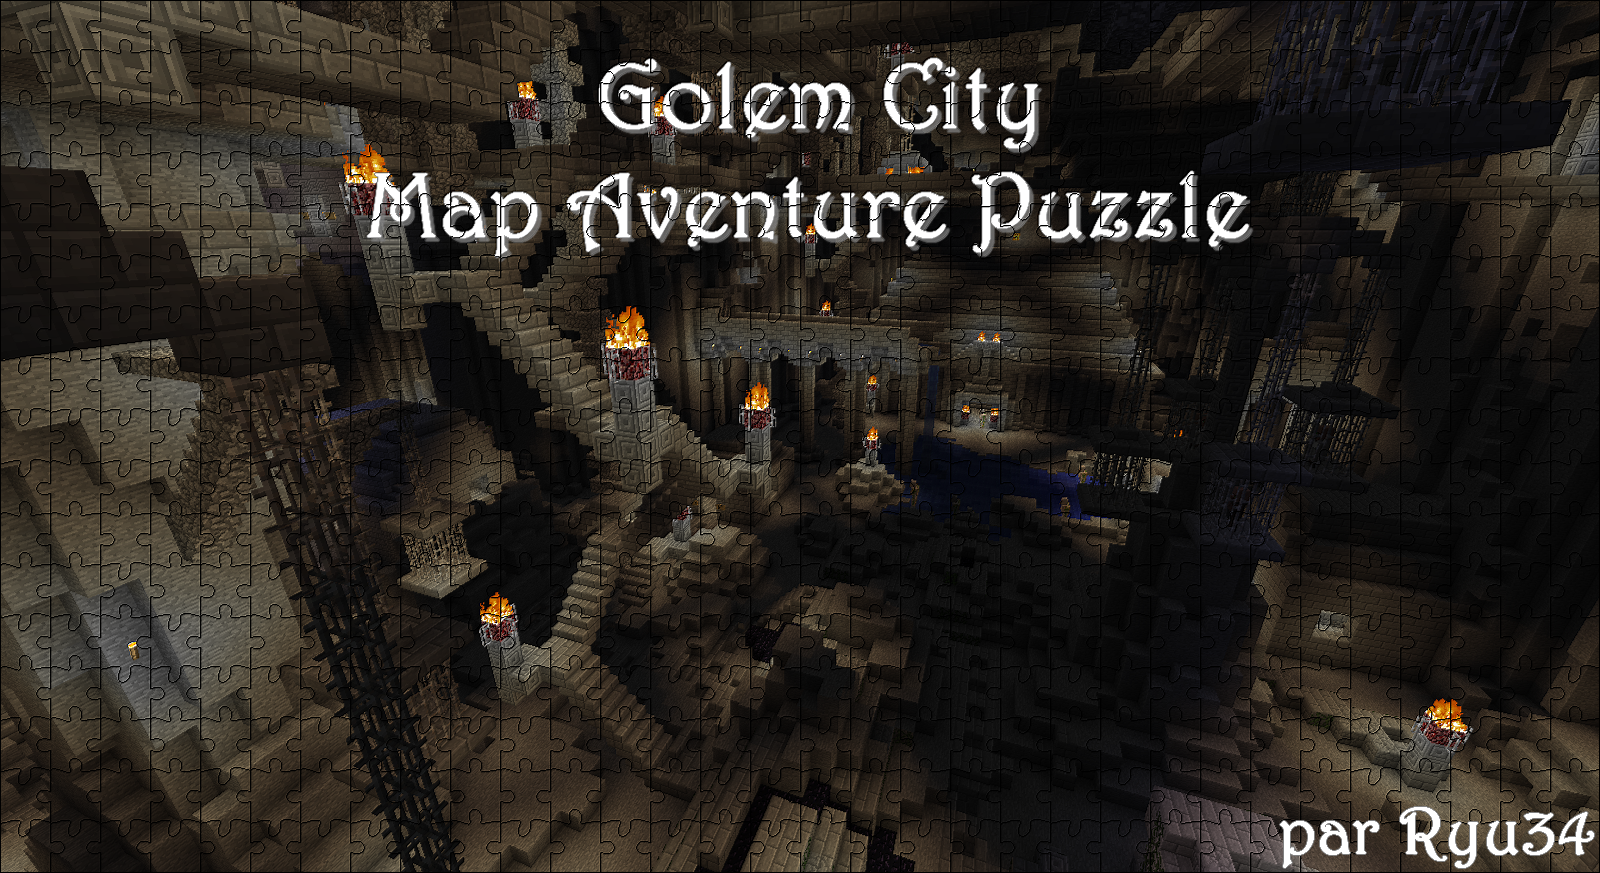 minecraft-map-puzzle-golem-city